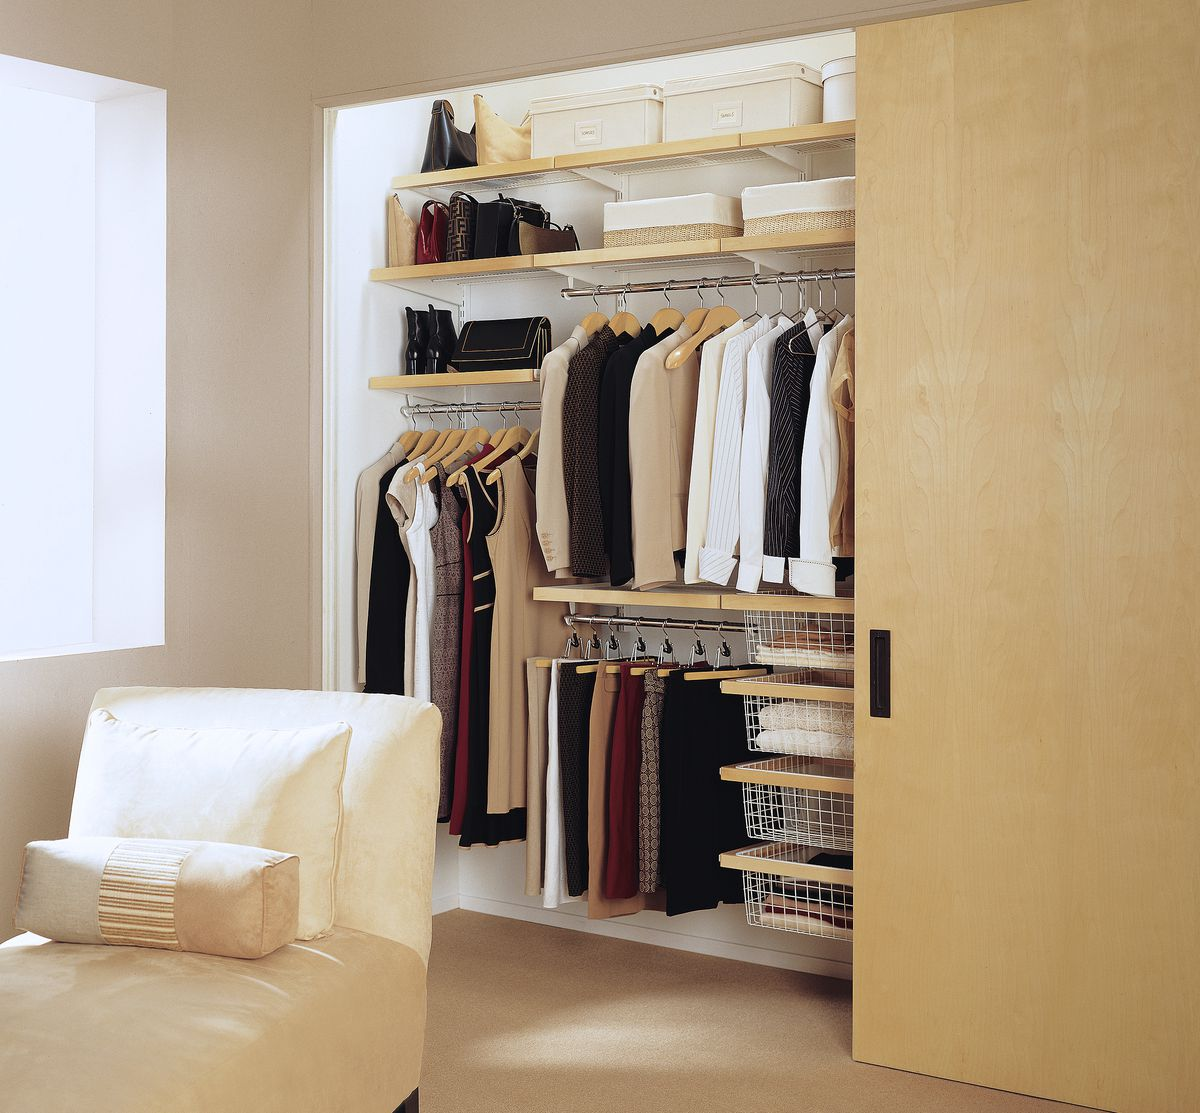 Semi-Custom System Options when planning to redo your bedroom closet